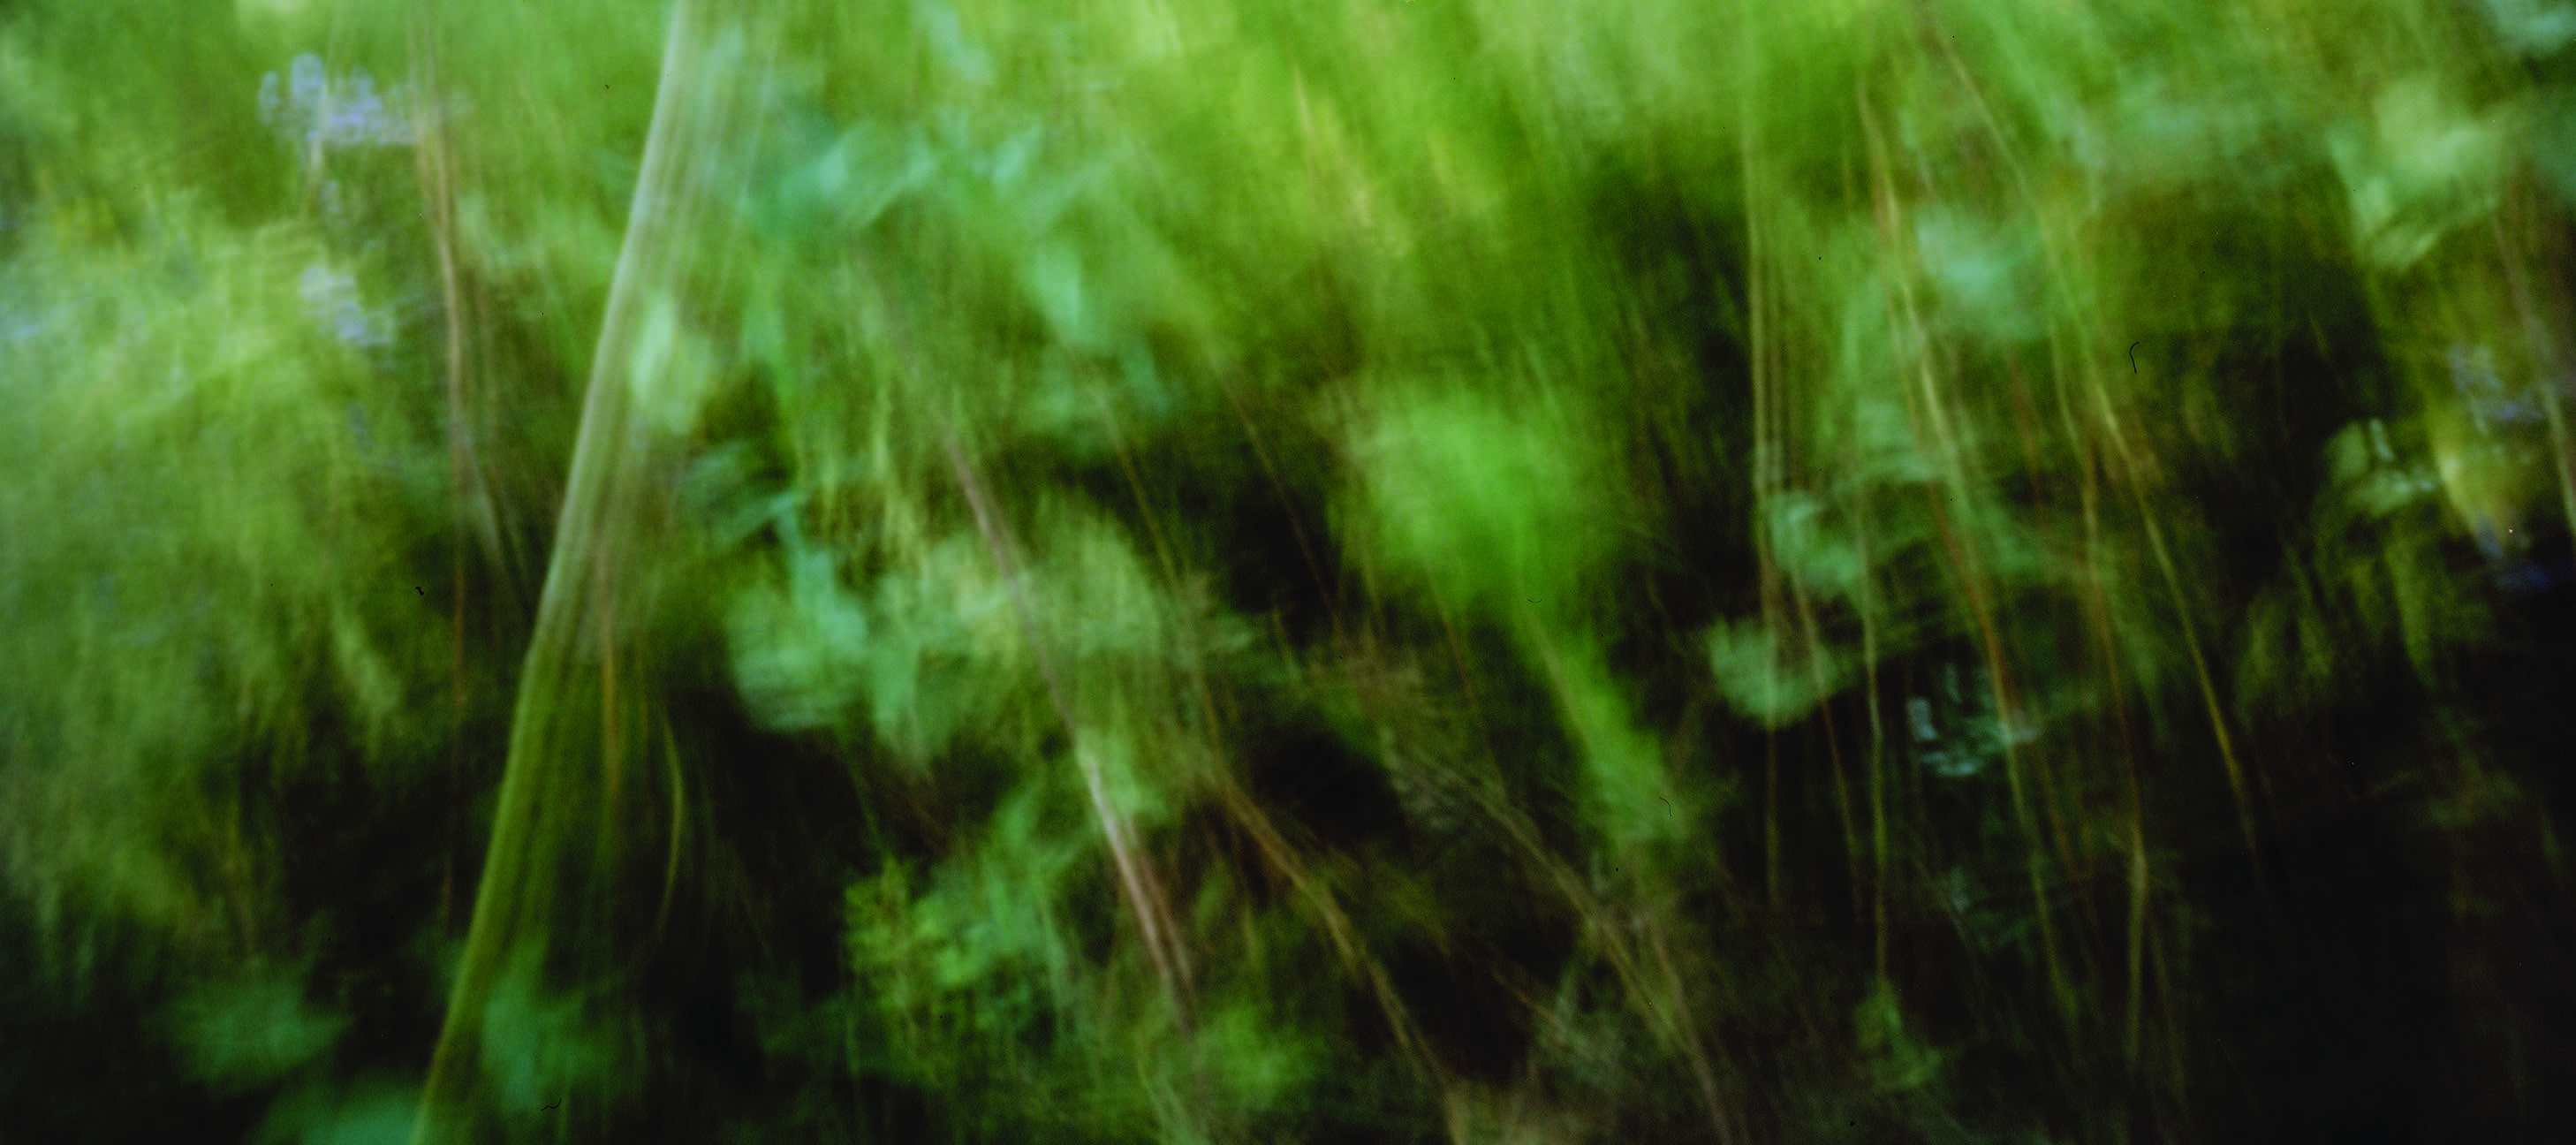 Abstract art with hazy green light